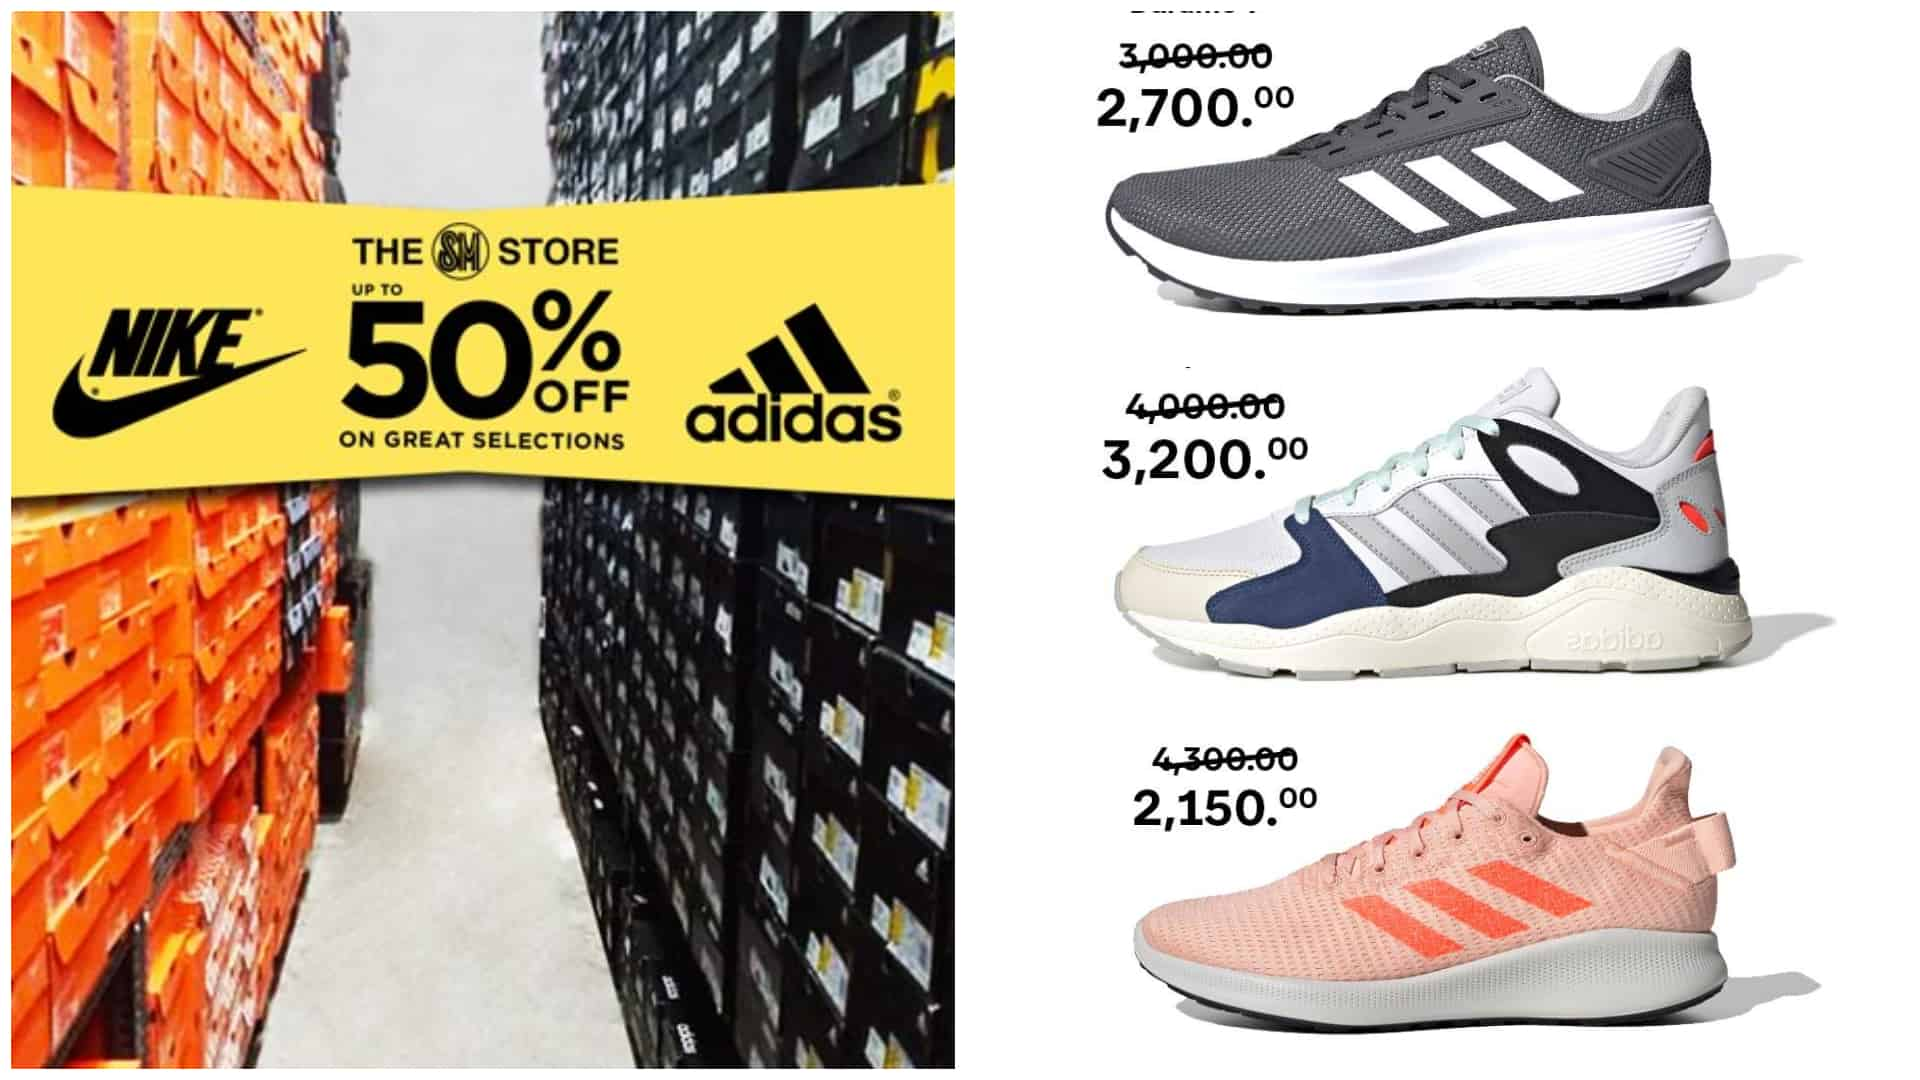 Injusto Romance espectro  Sale alert! 50% OFF on Nike and Adidas Sneakers Online Sale | Sugbo.ph -  Cebu